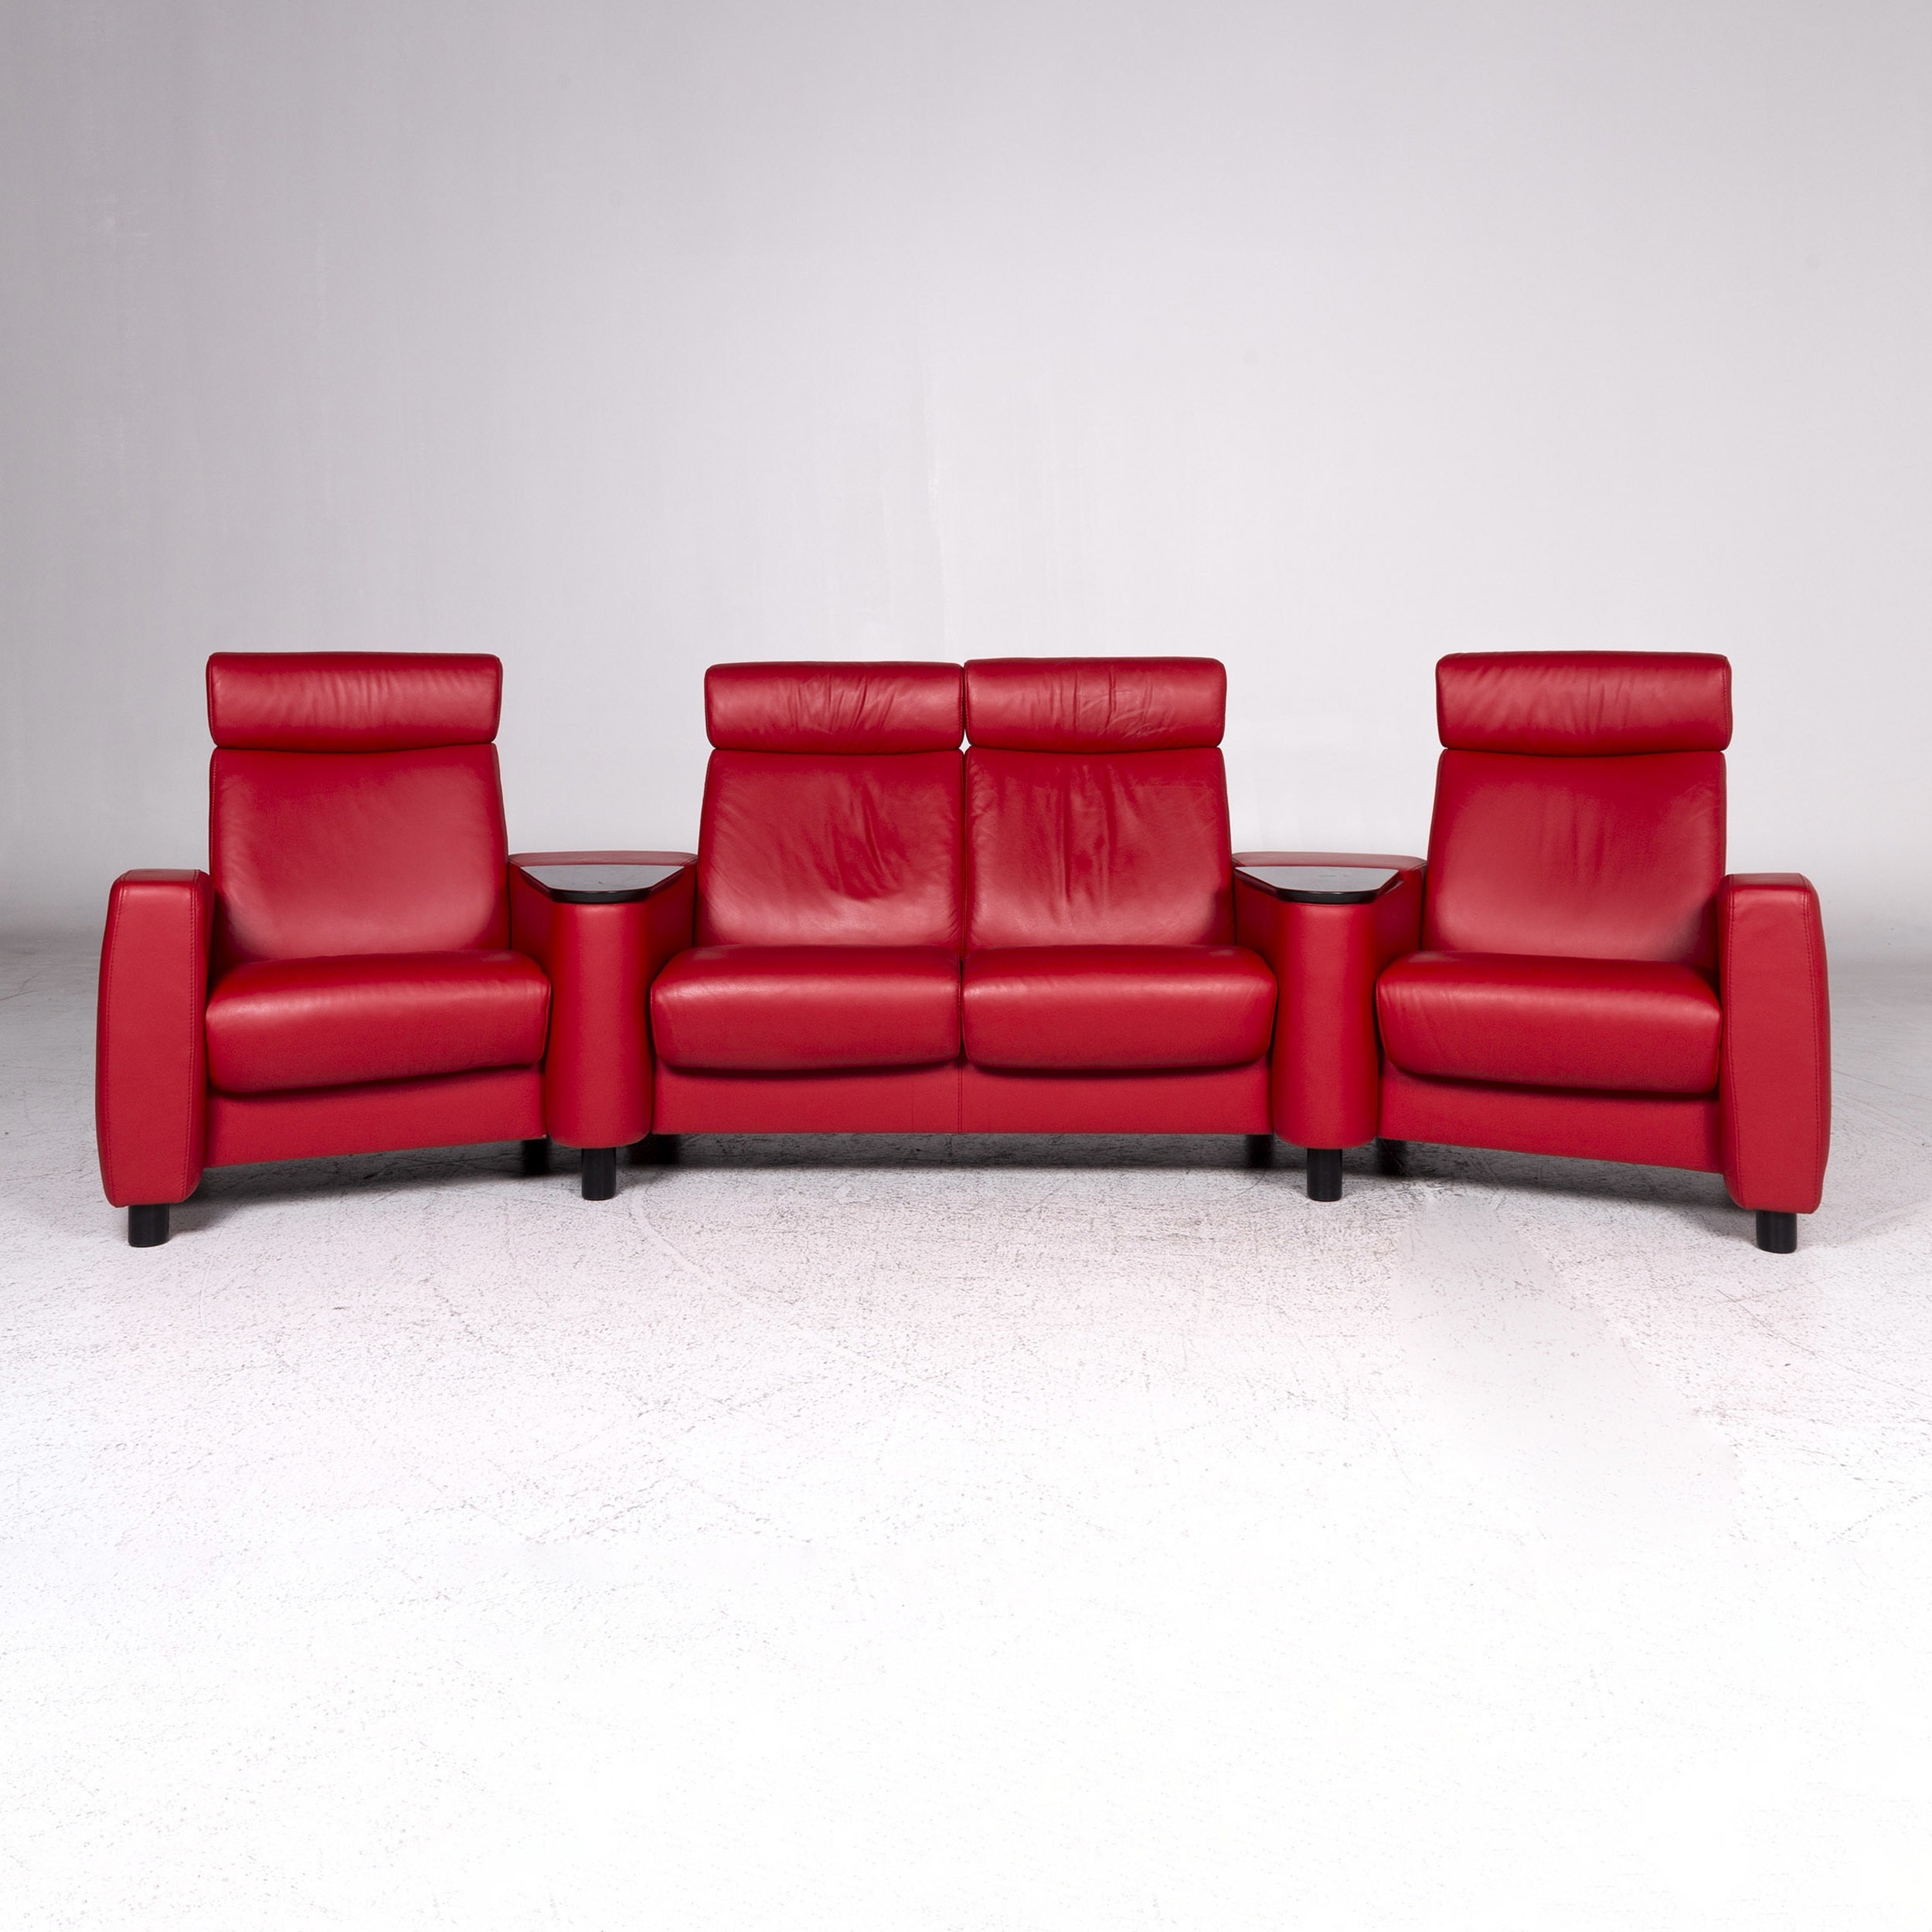 Relax Sofa Braun Stressless Arion Designer Leather Sofa Red Four Seater Relax Couch 9572